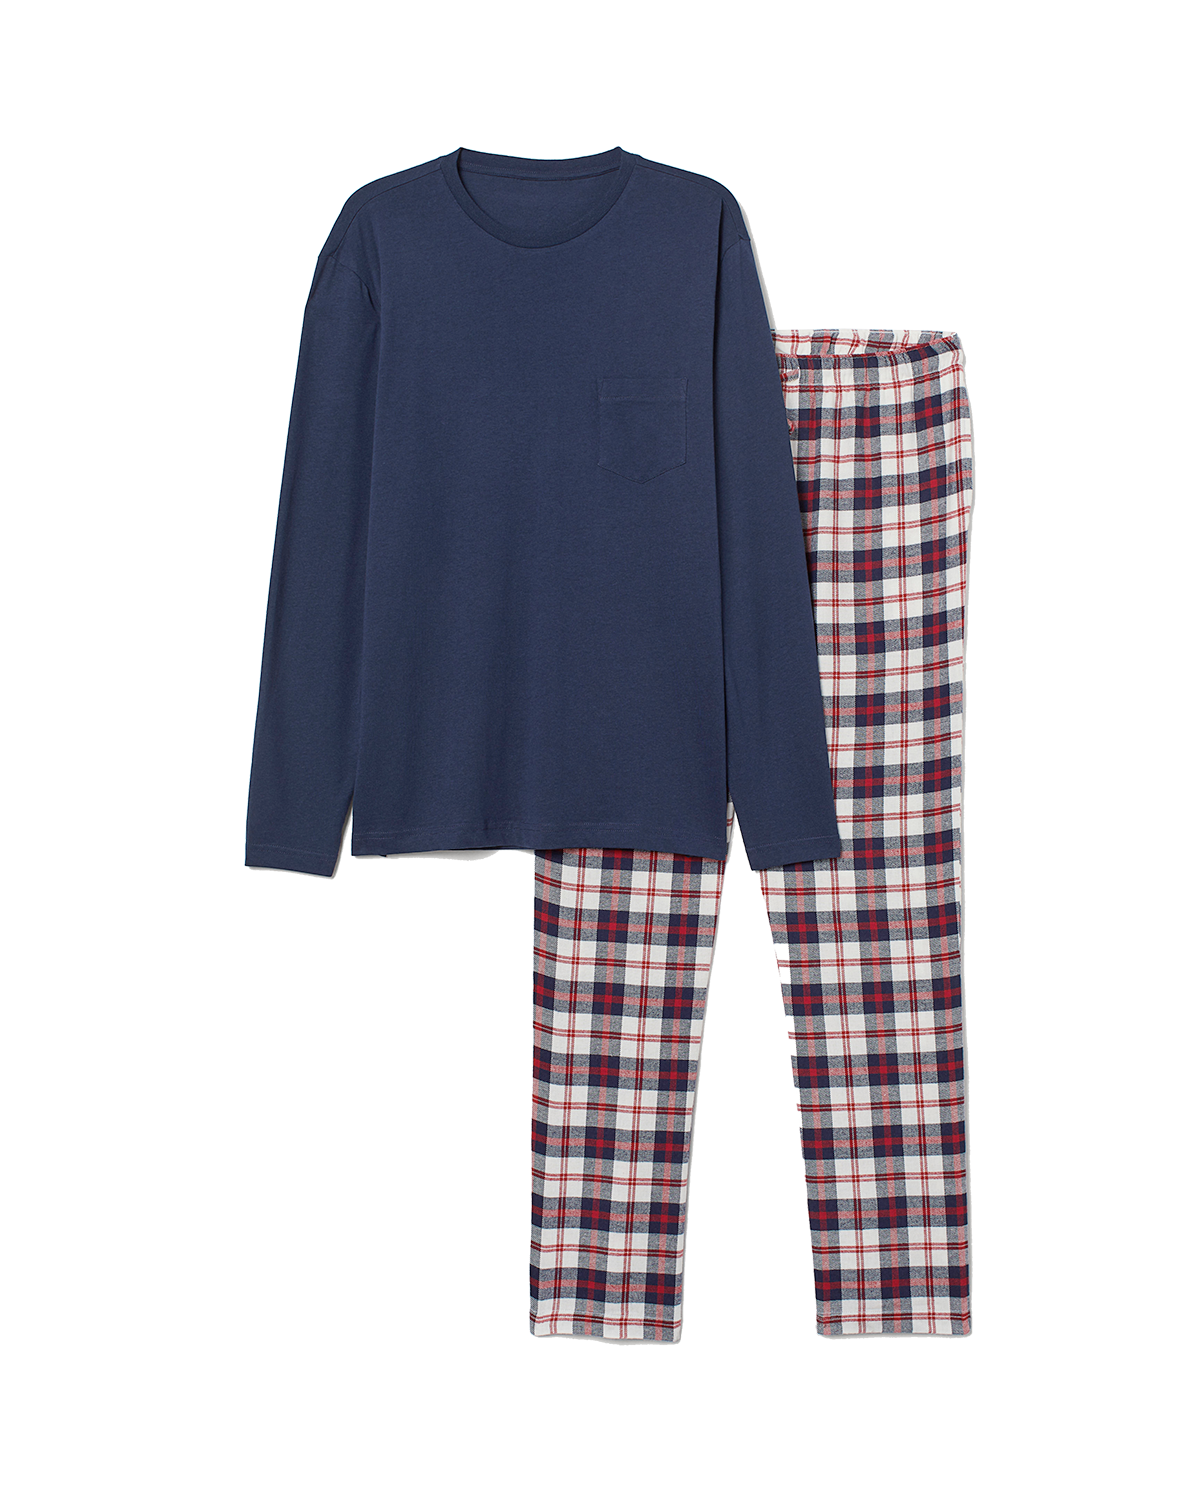 Old Navy product image